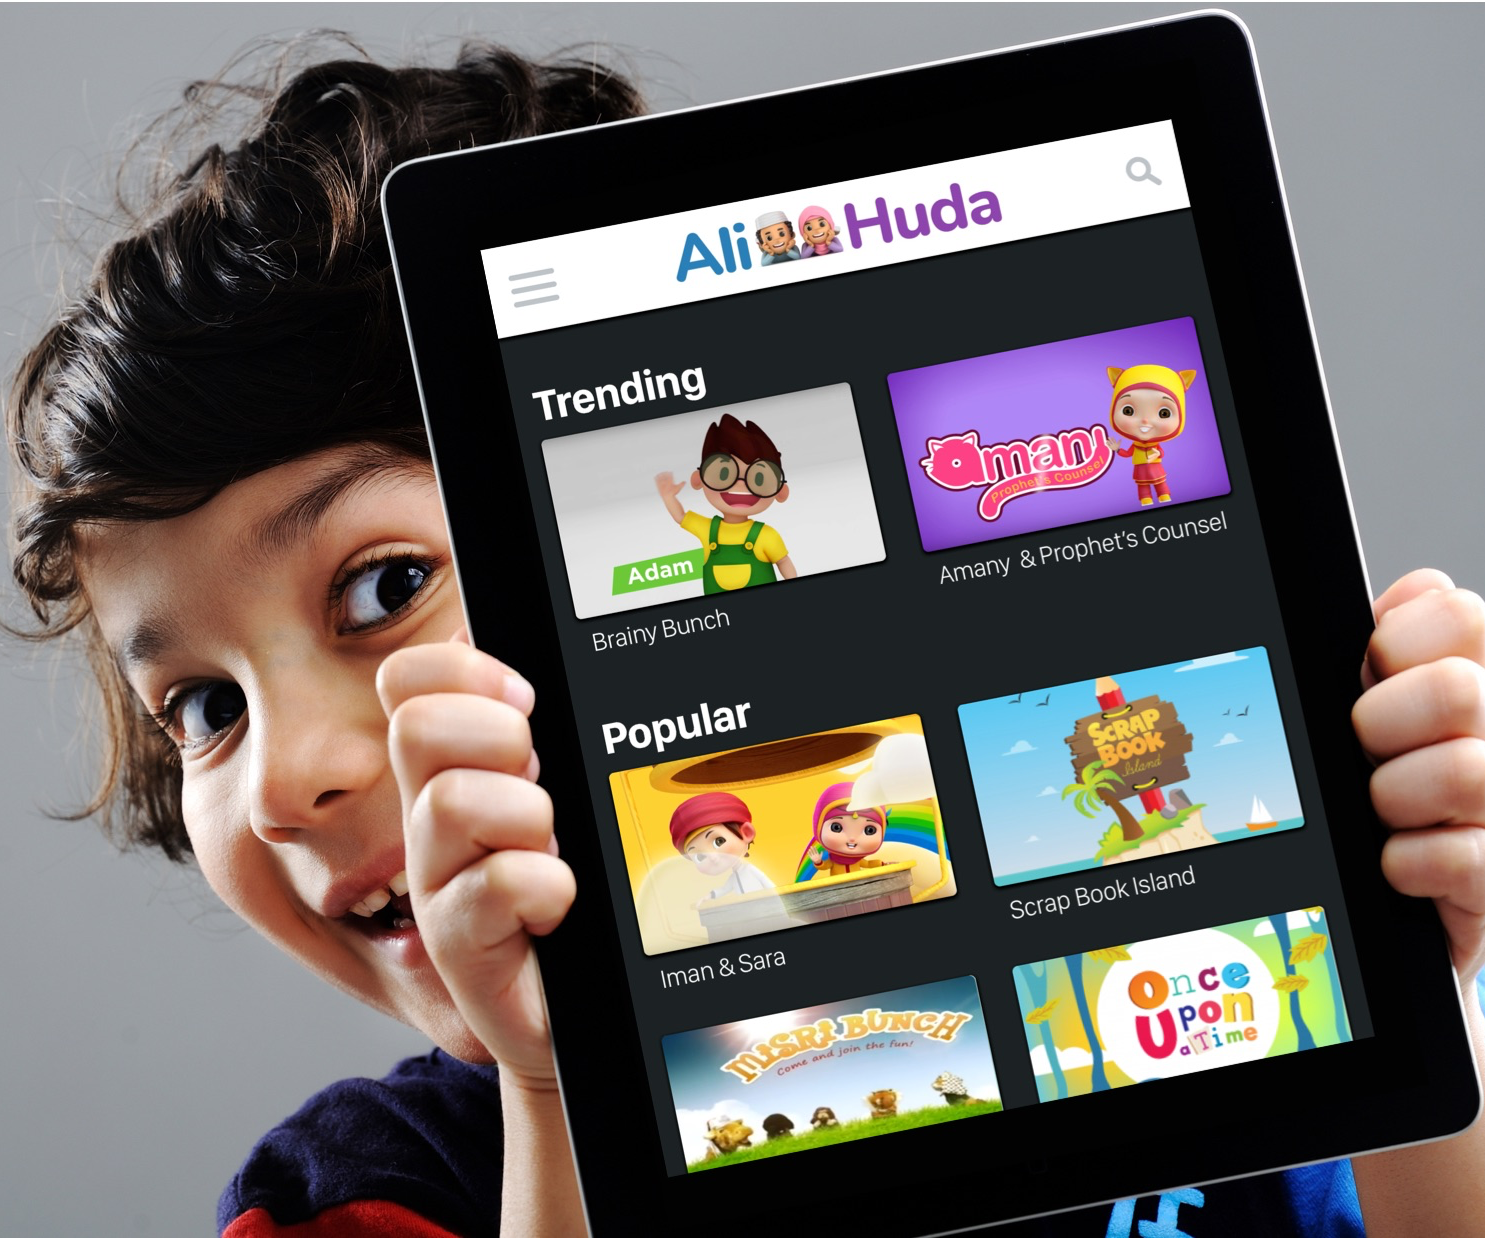 ALI HUDA - We are very proud to have Ali Huda as official sponsors of The Kids Zone at London Muslim Lifestyle Show 2018.Ali Huda Entertains and Educates Your Children About Islam the fun way with 1000s of Shows Exclusively for Muslim Kids. Each show is curated and based on core Islamic values. Peace of Mind for Muslim Parents. Invest in the future of your kid(s) today.